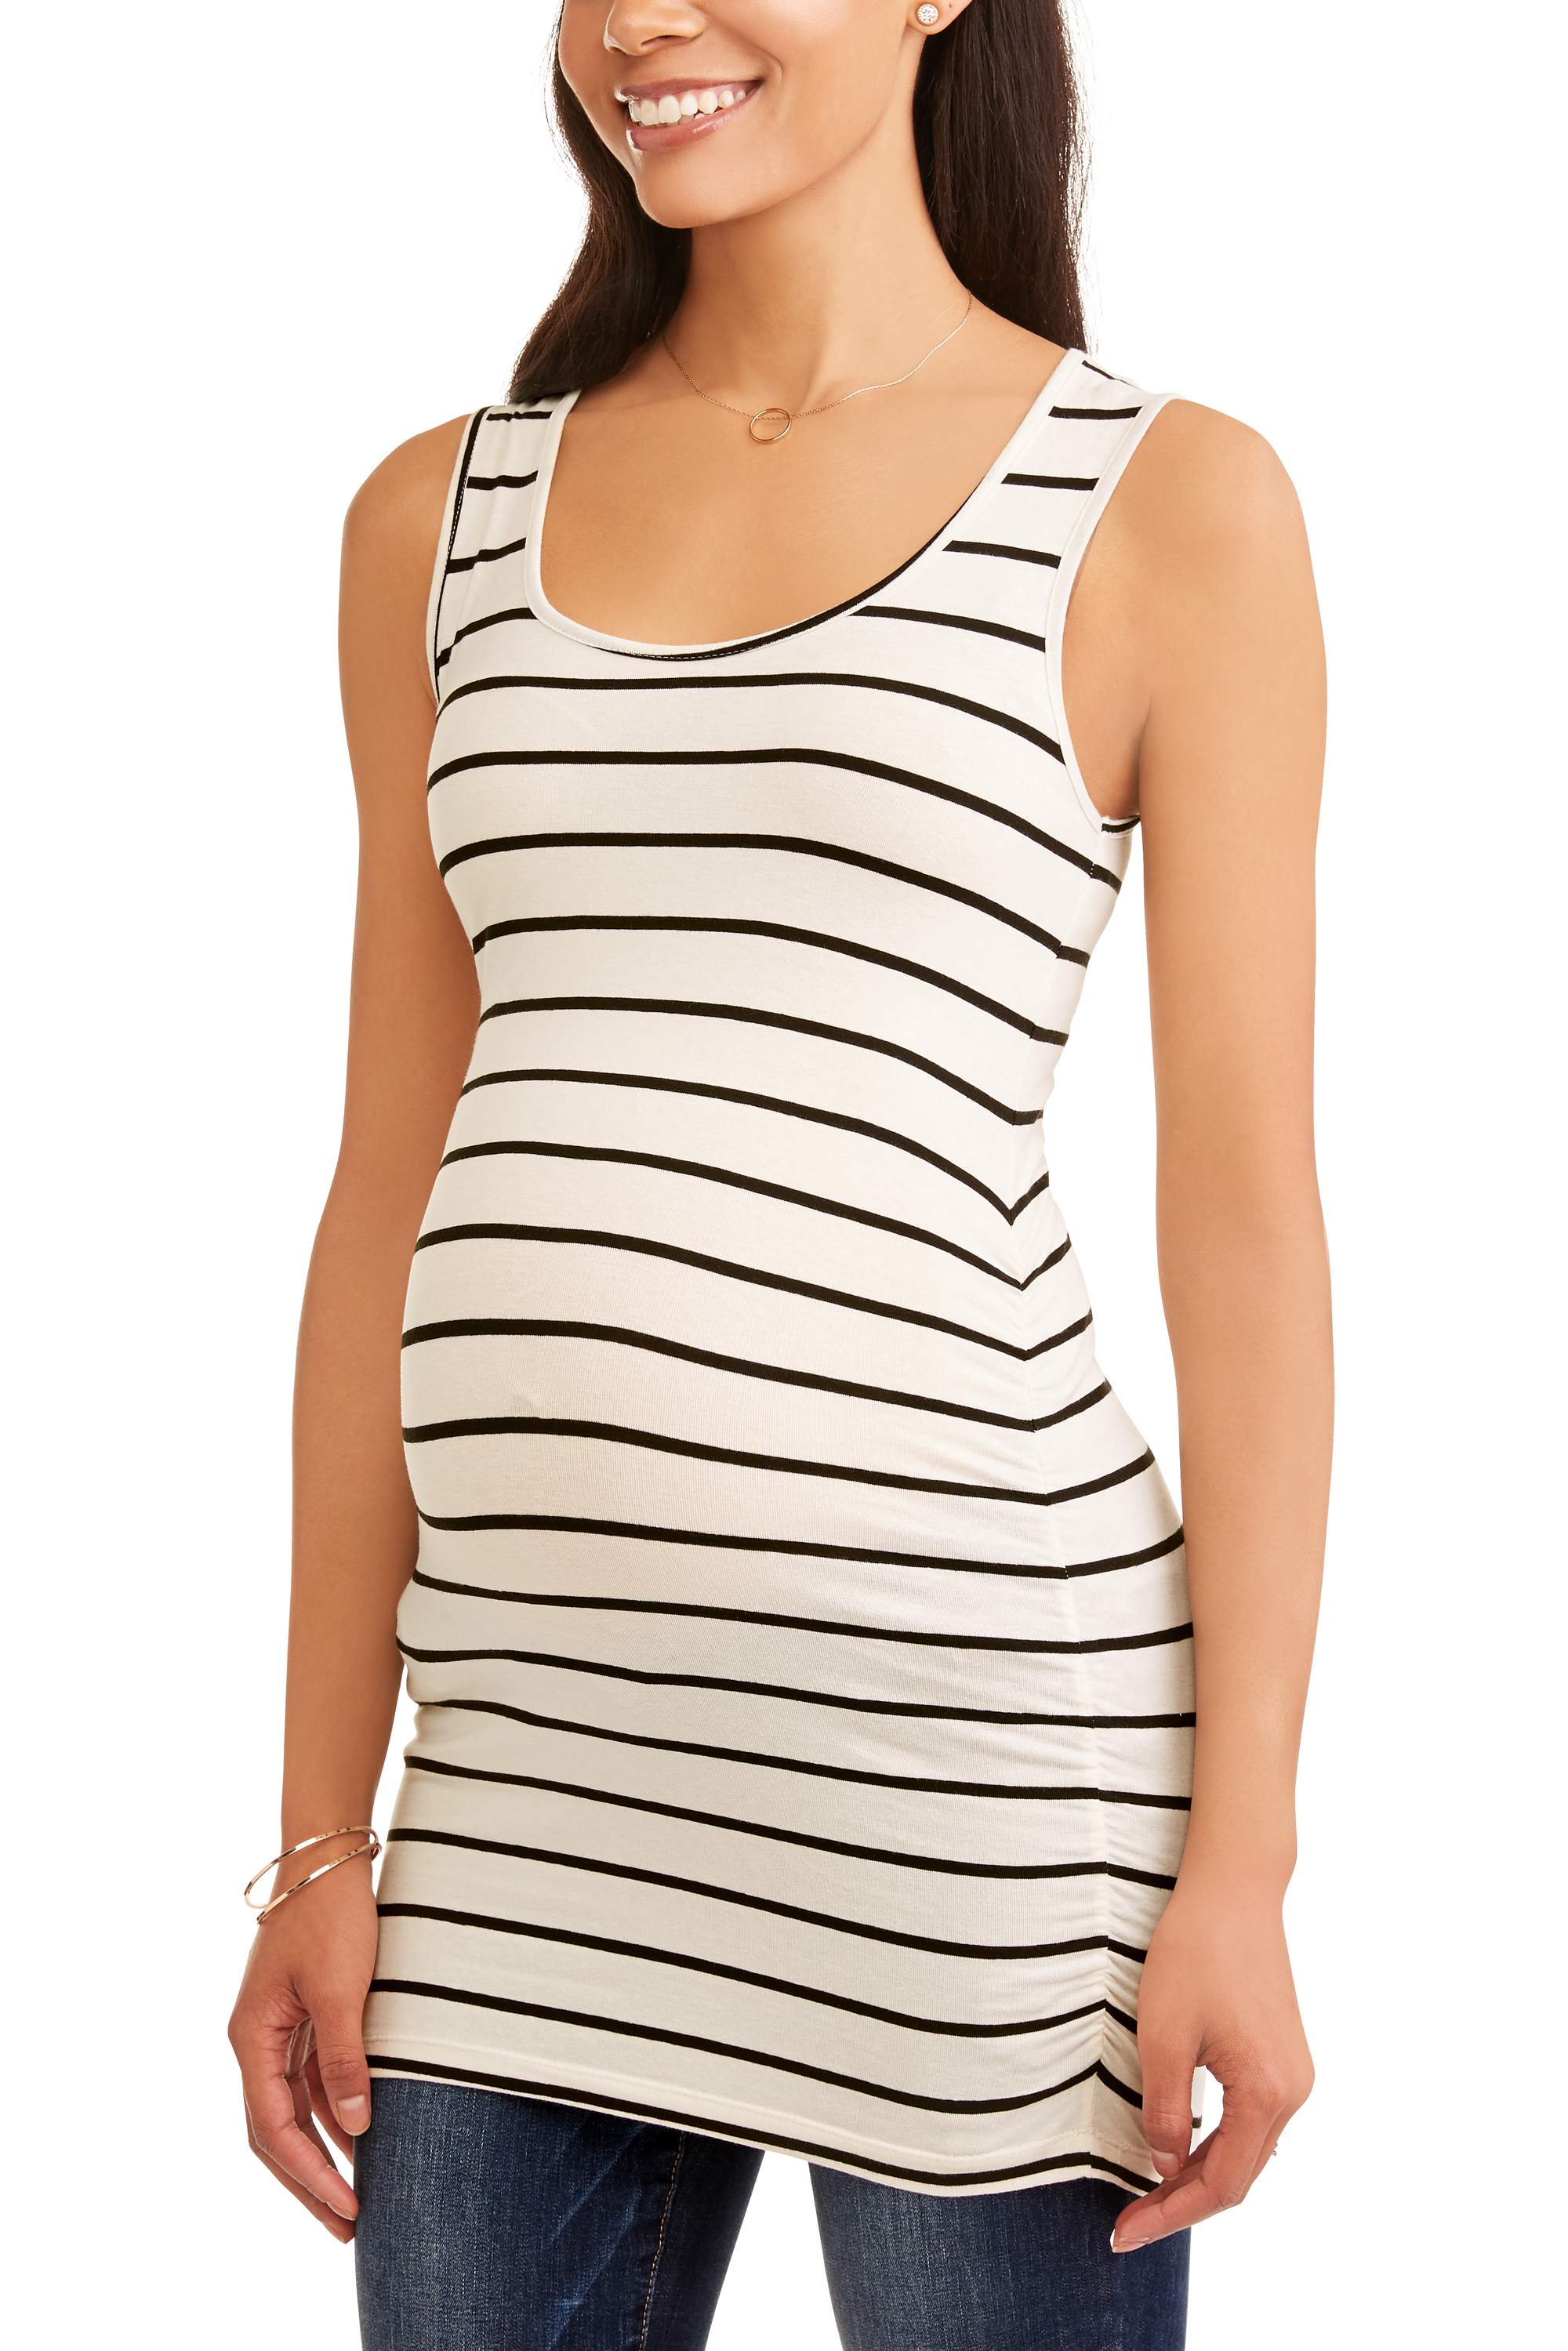 Maternity Sleeveless Stripe Scoop Neck Top with Flattering Side Ruching-- Available In Plus Sizes